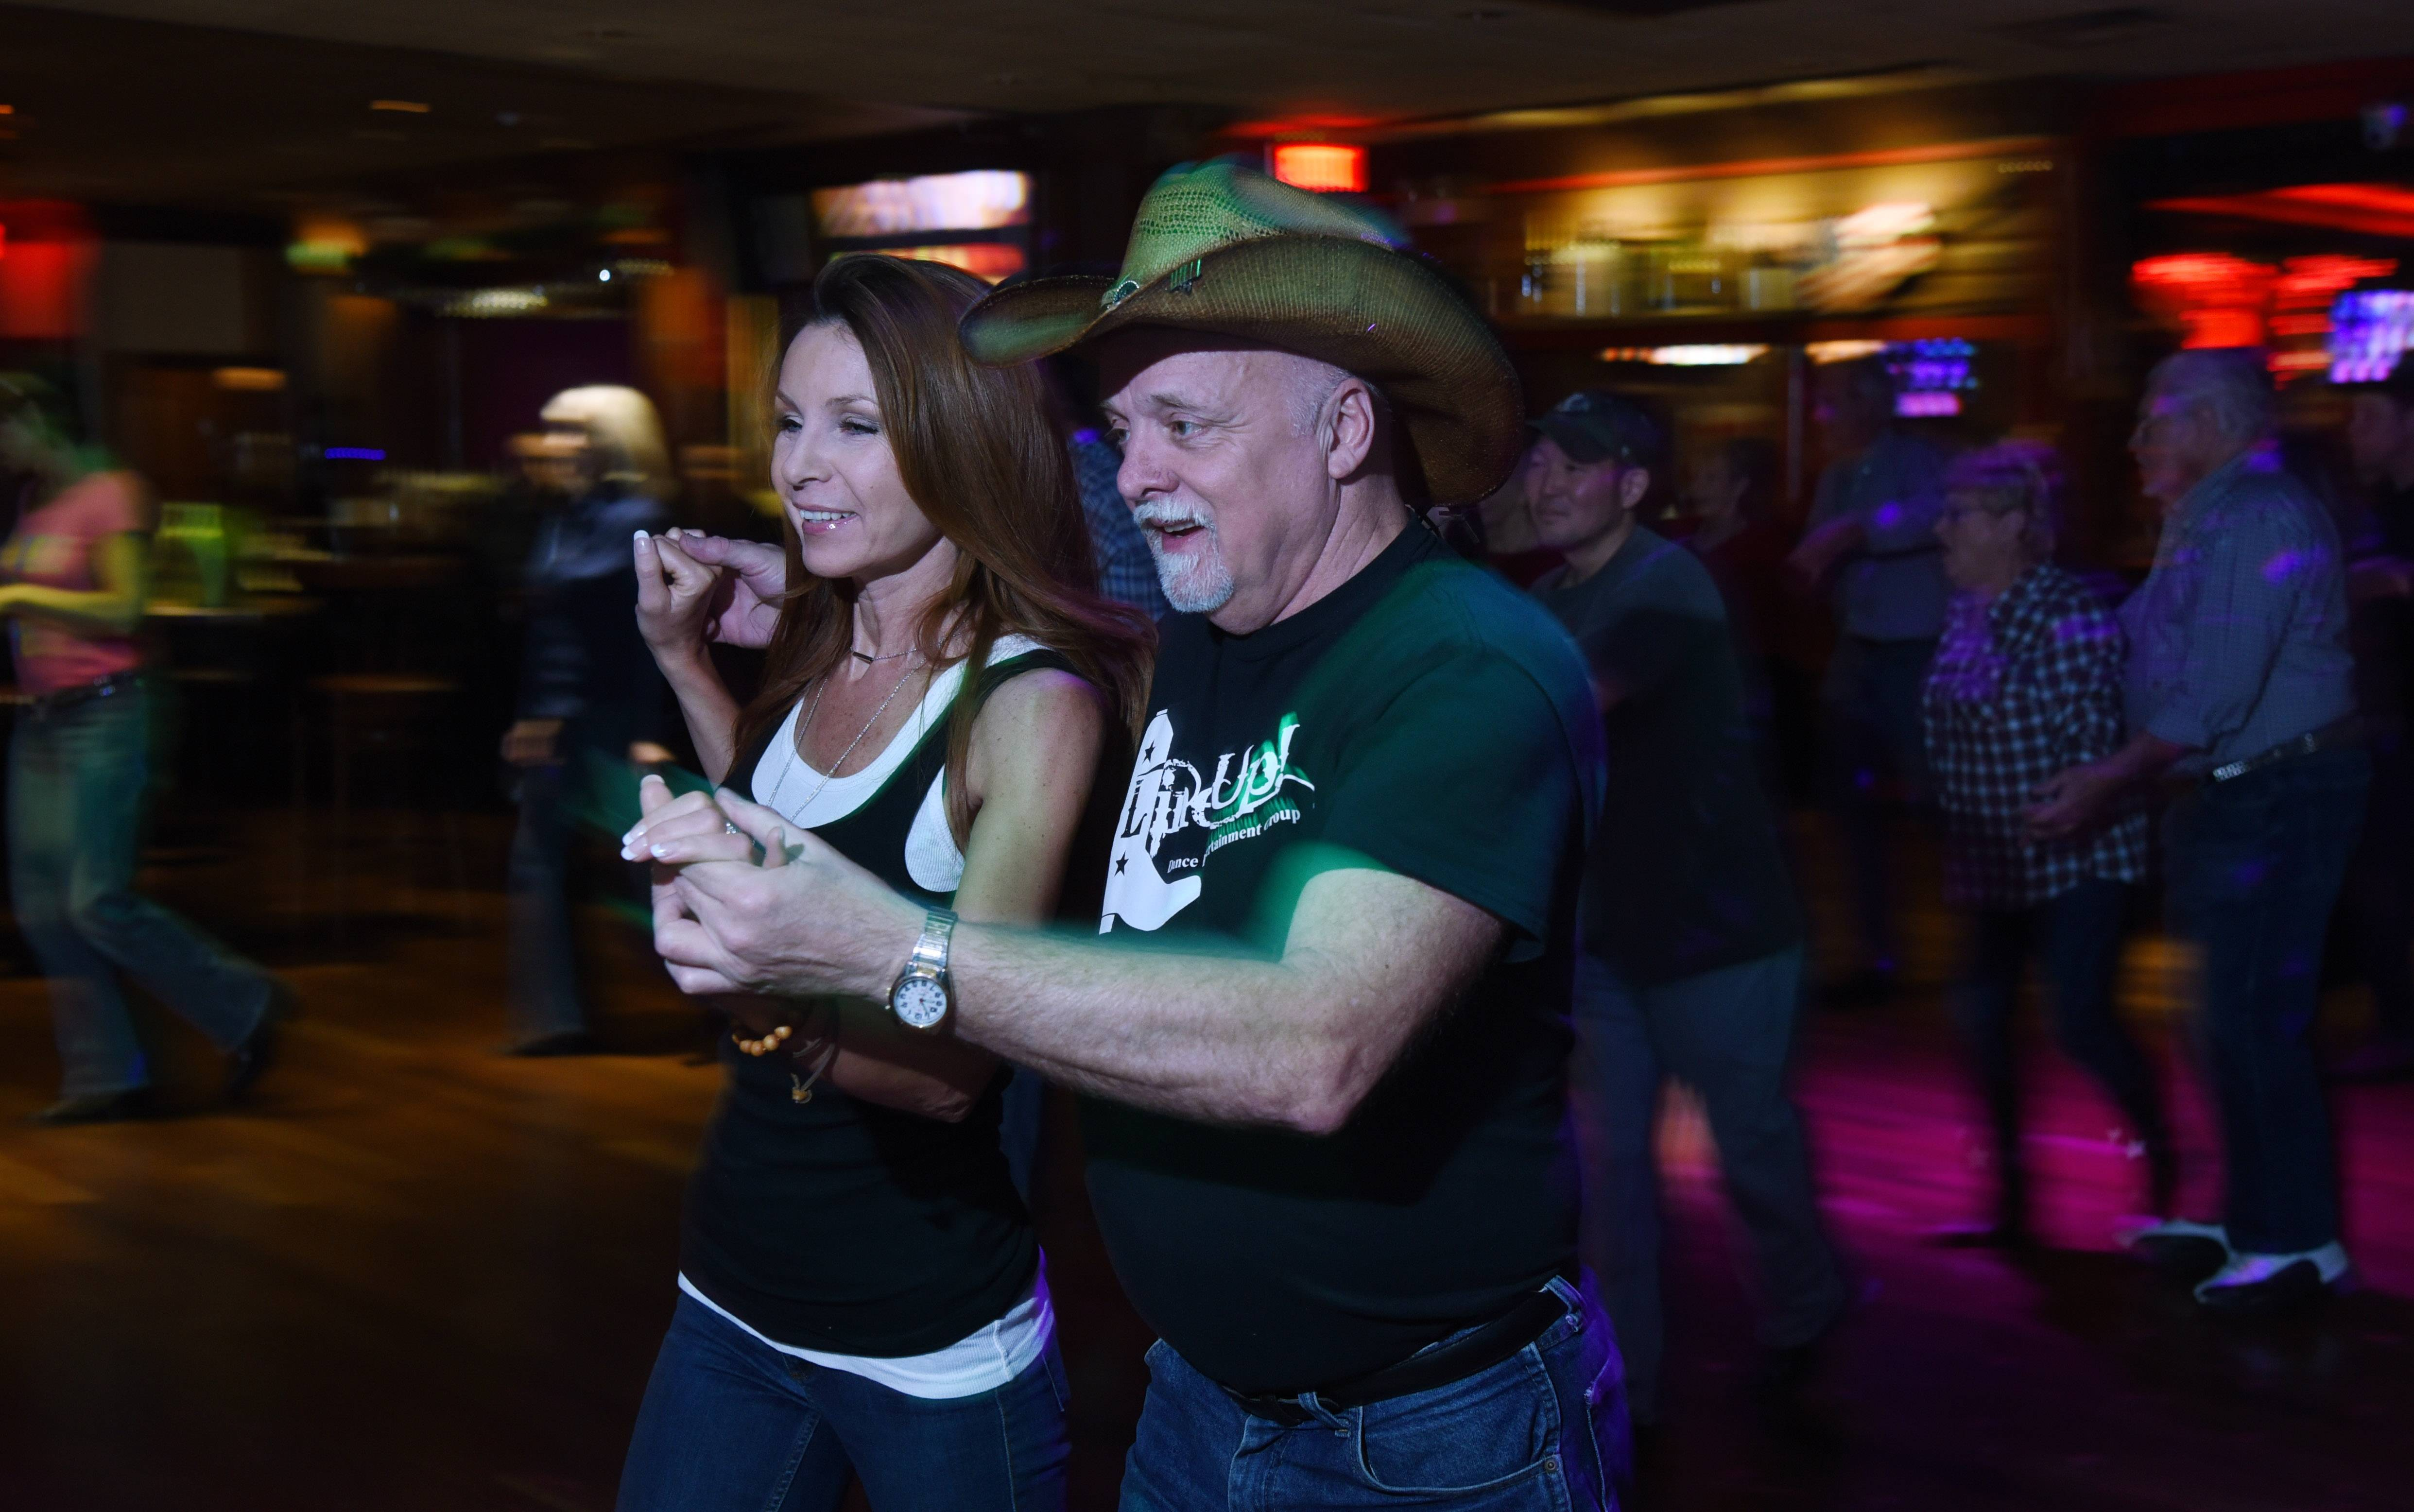 Kat Jackowska of Downers Grove dances with Keith Noltkamper of Des Plaines at Lucky Star in Bartlett.